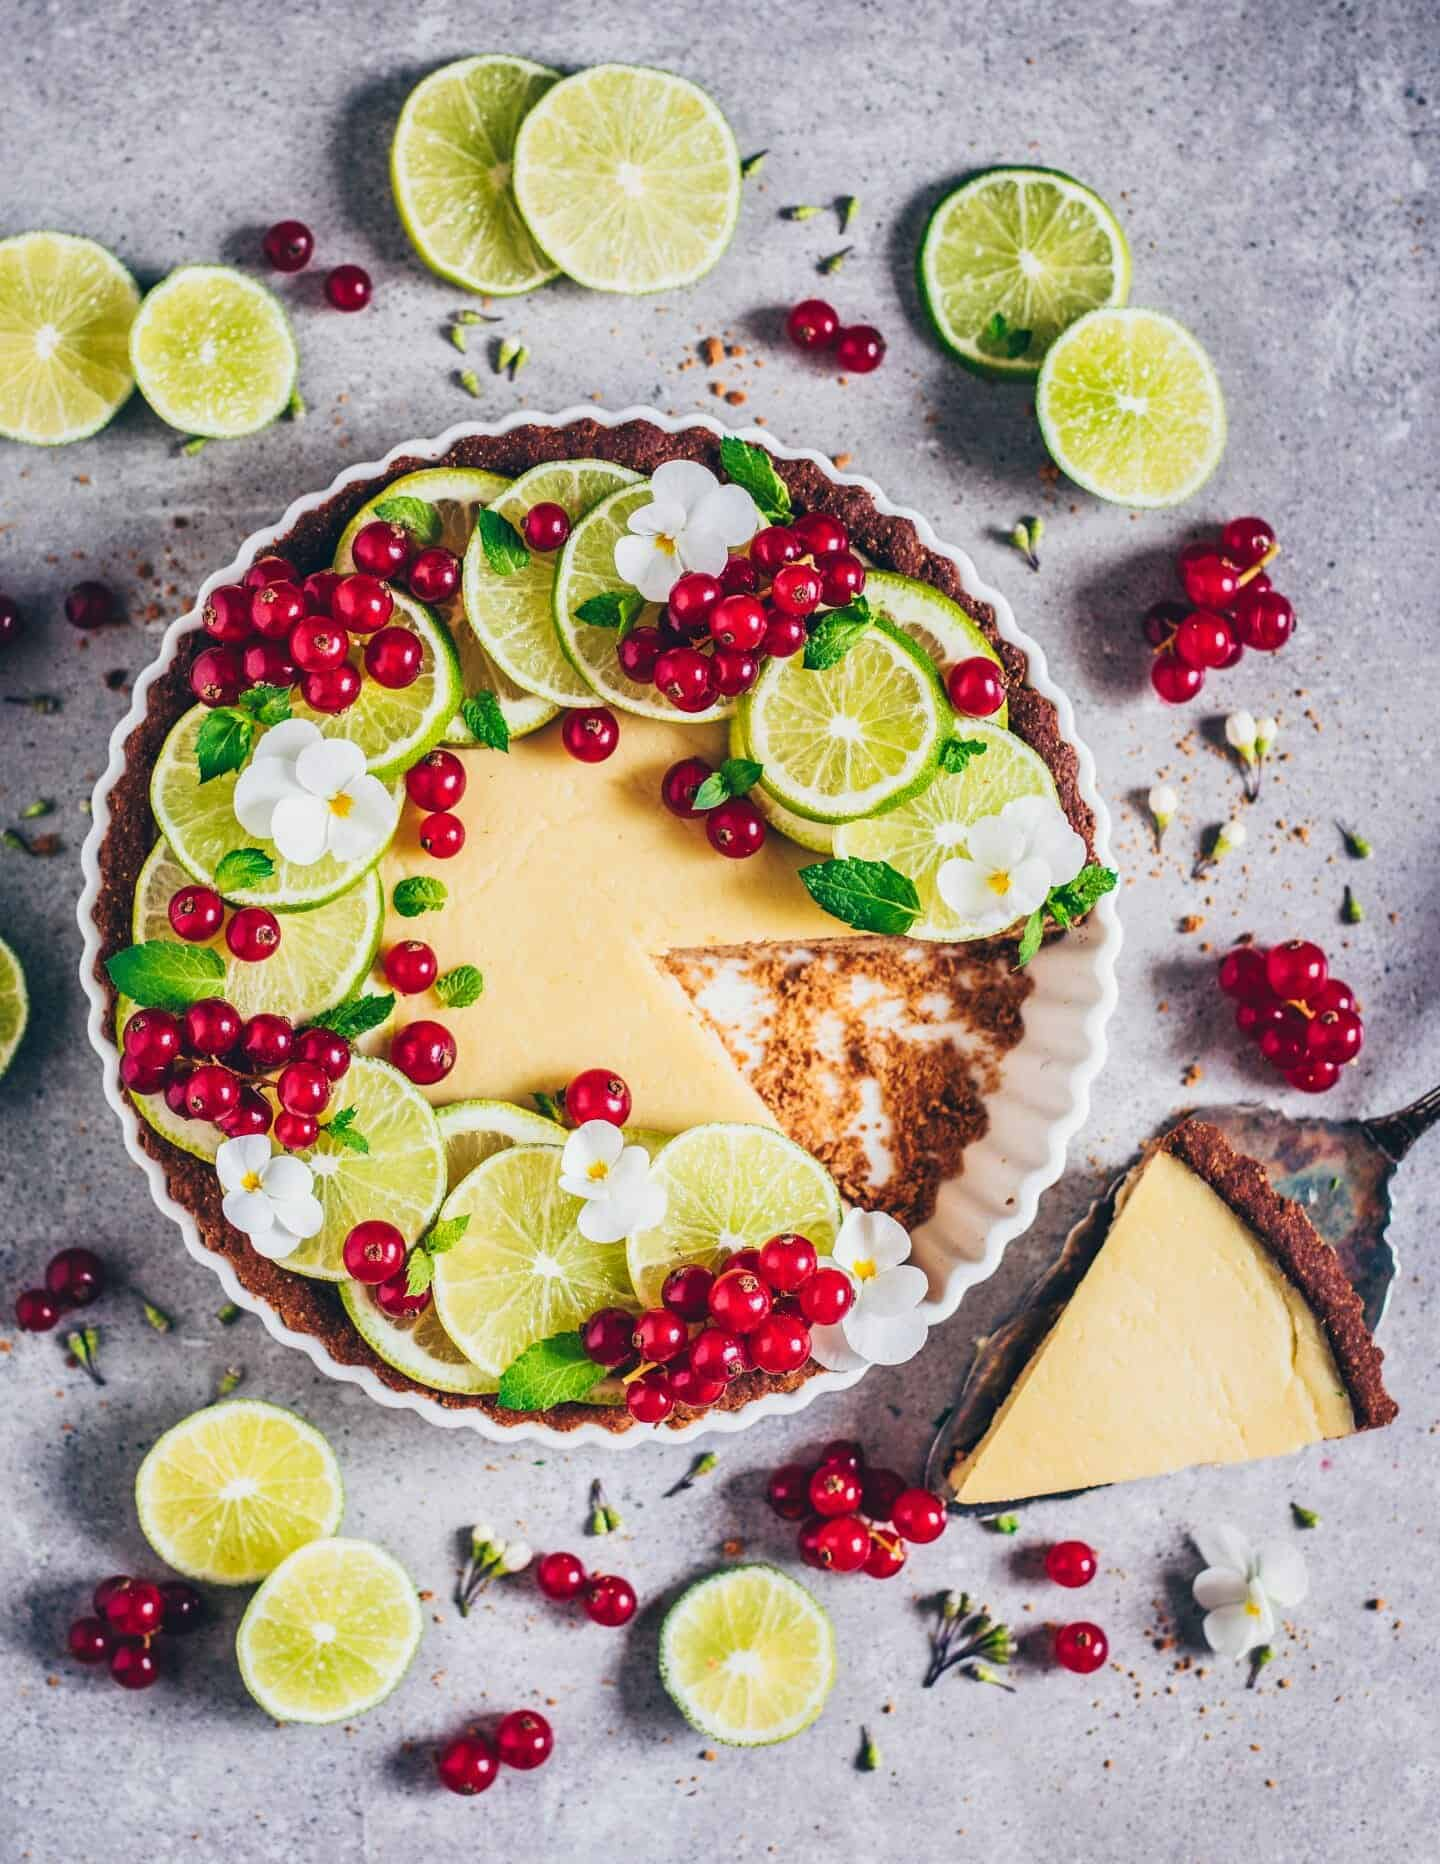 vegan key lime pie with red currants